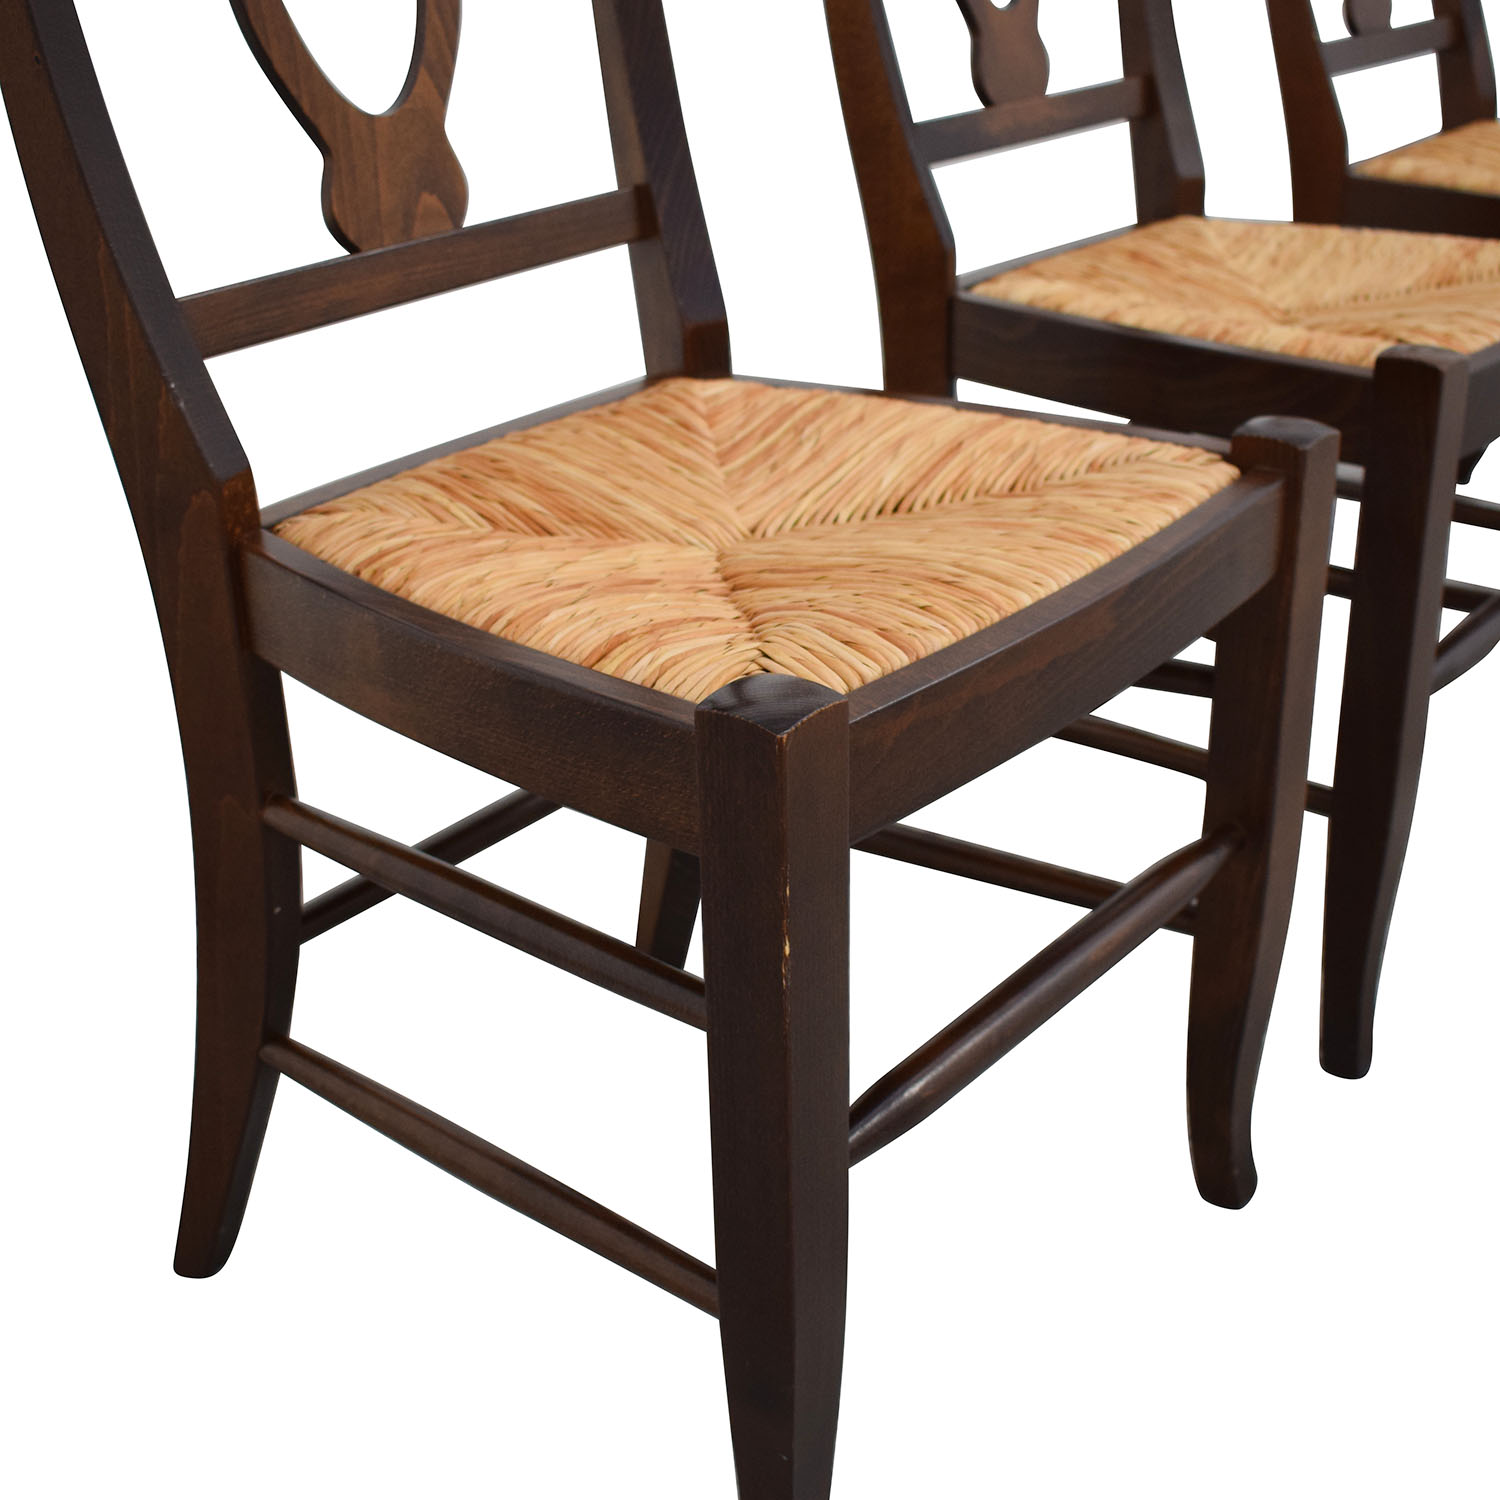 buy Pottery Barn Pottery Barn Napoleon Dining Chairs online